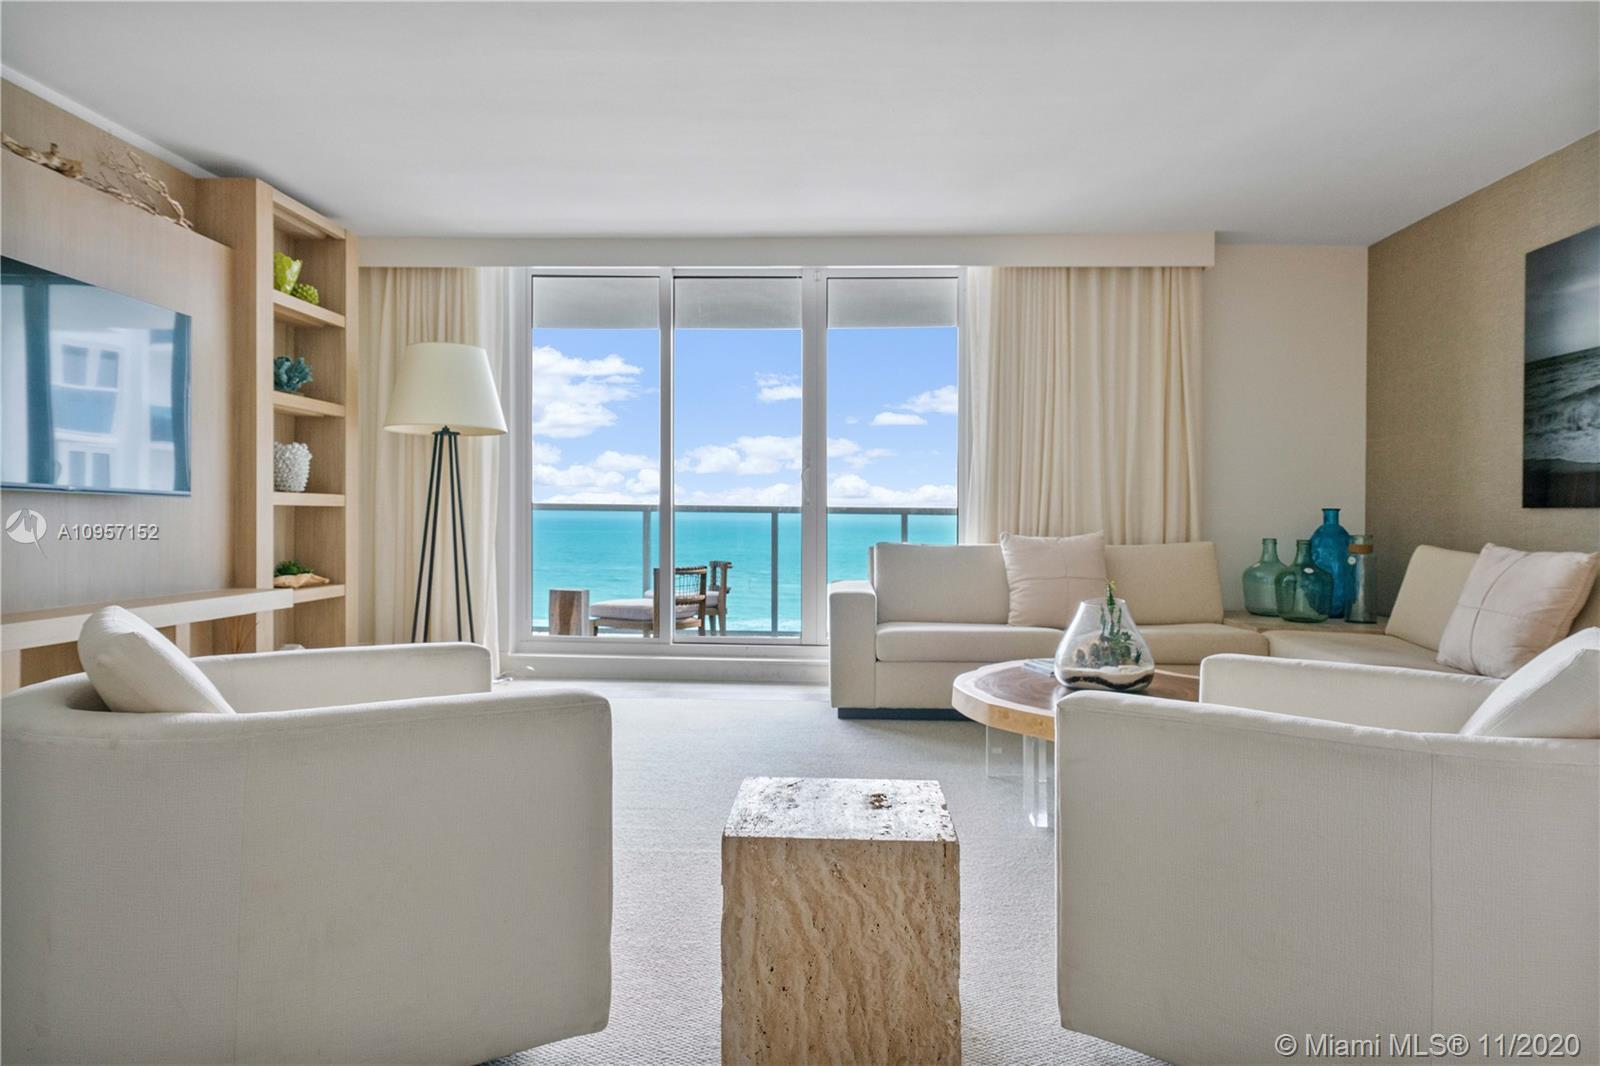 Stunning corner unit with direct ocean views ! 2 bedrooms, 2.5 bathrooms immaculately designed by ac